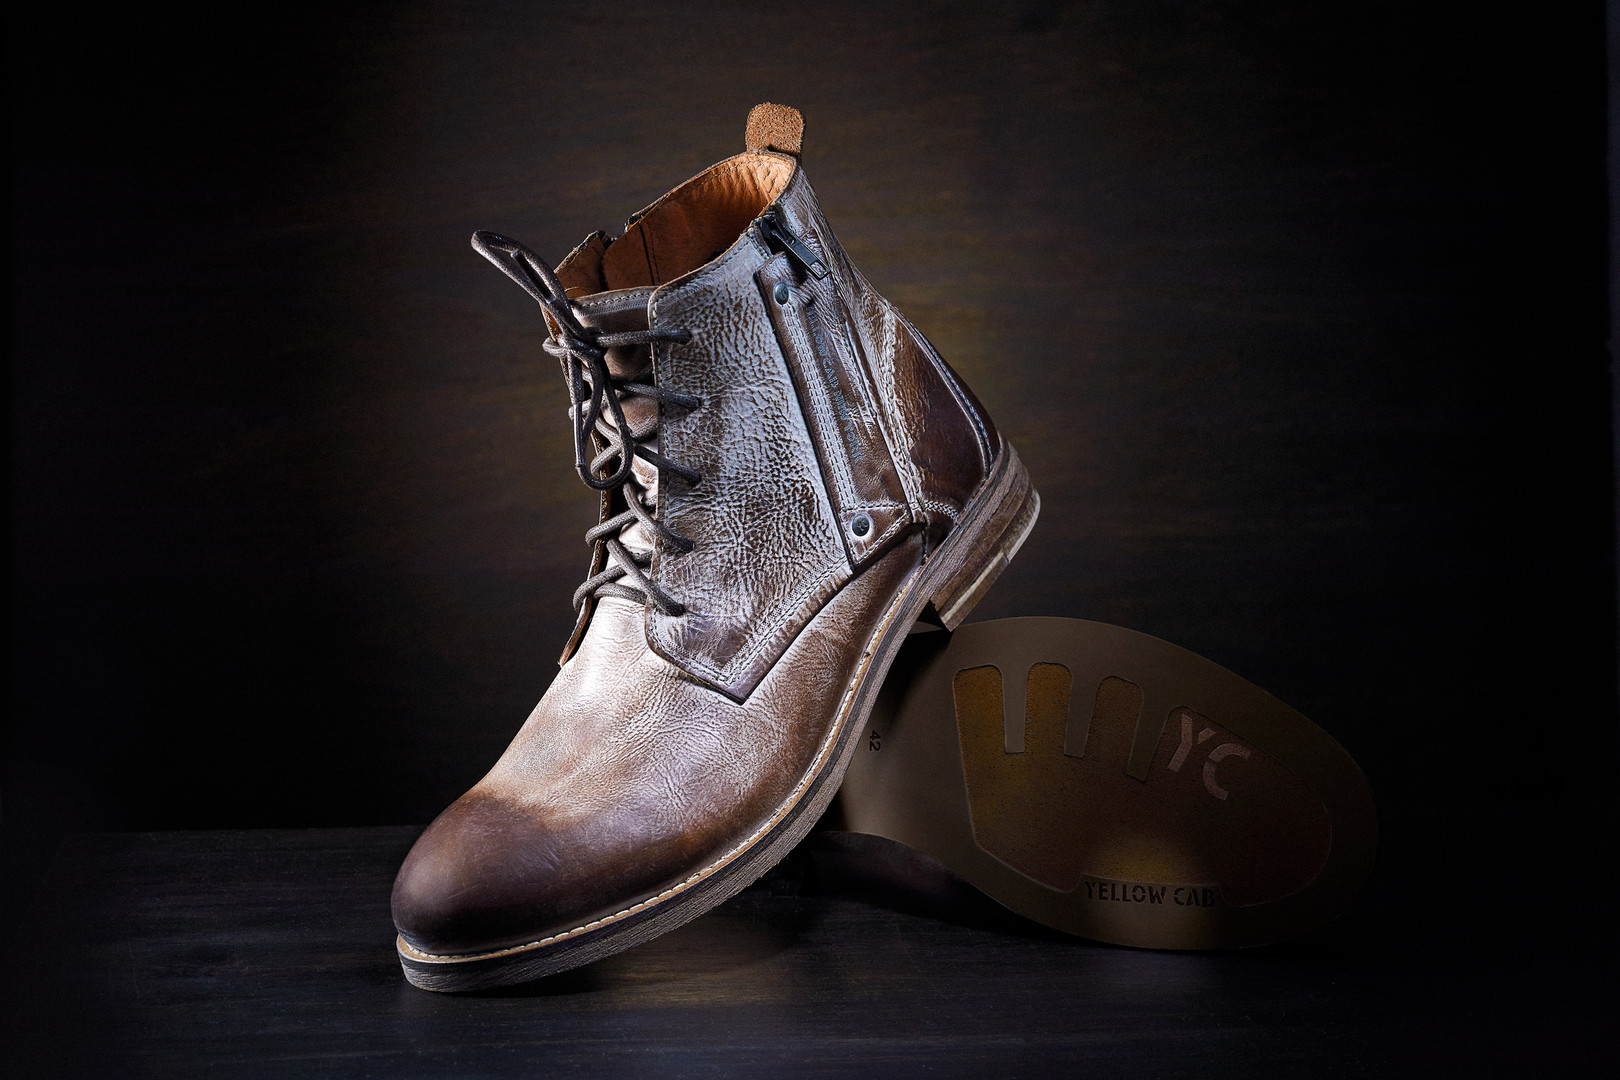 YC boots.